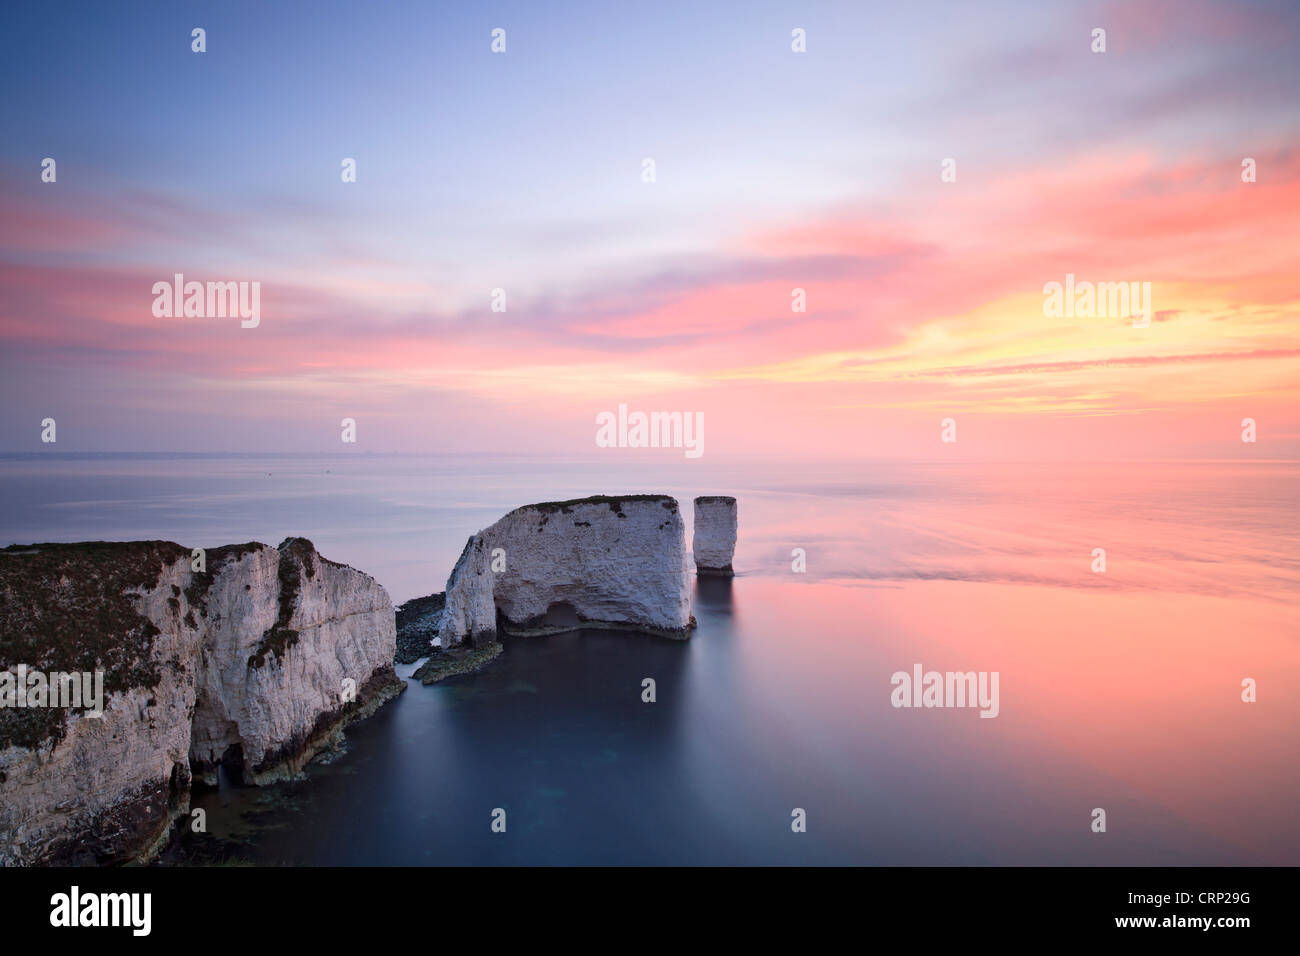 Sunrise at Old Harry Rocks on Dorset's Jurassic Coast world heritage site near Swanage. - Stock Image